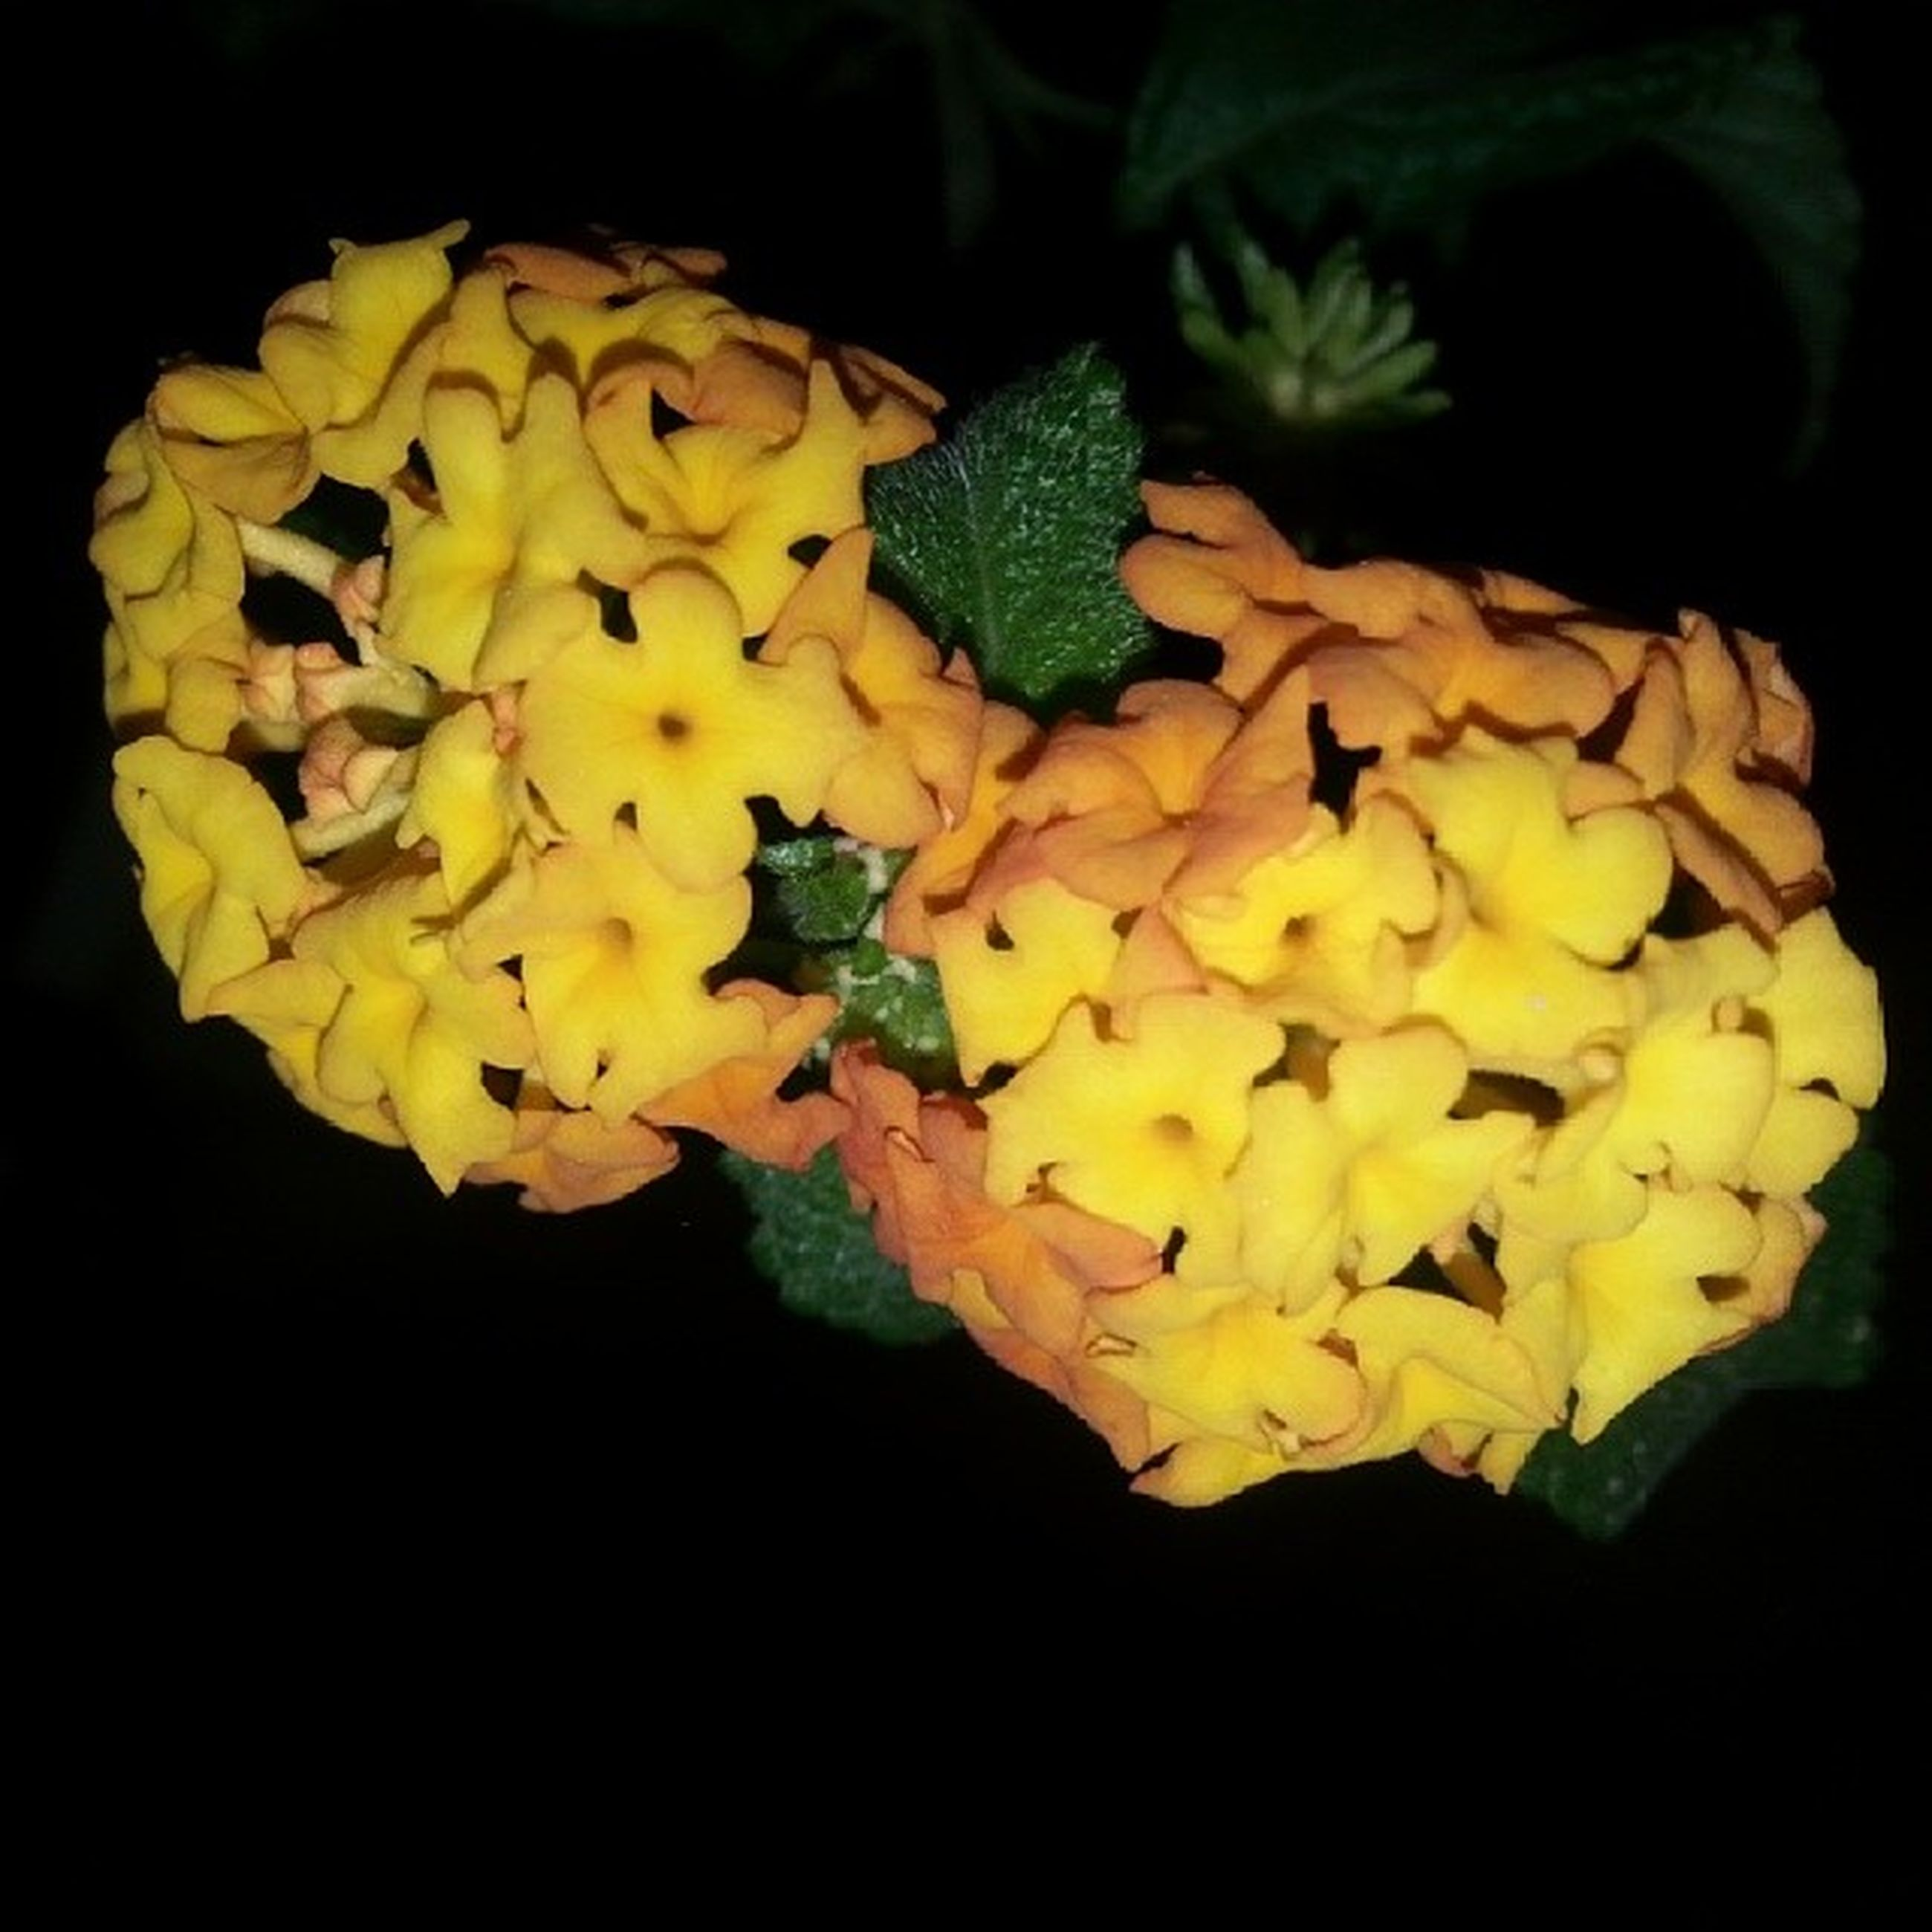 flower, petal, freshness, yellow, fragility, flower head, studio shot, beauty in nature, black background, growth, close-up, nature, blooming, bunch of flowers, blossom, high angle view, plant, in bloom, no people, leaf